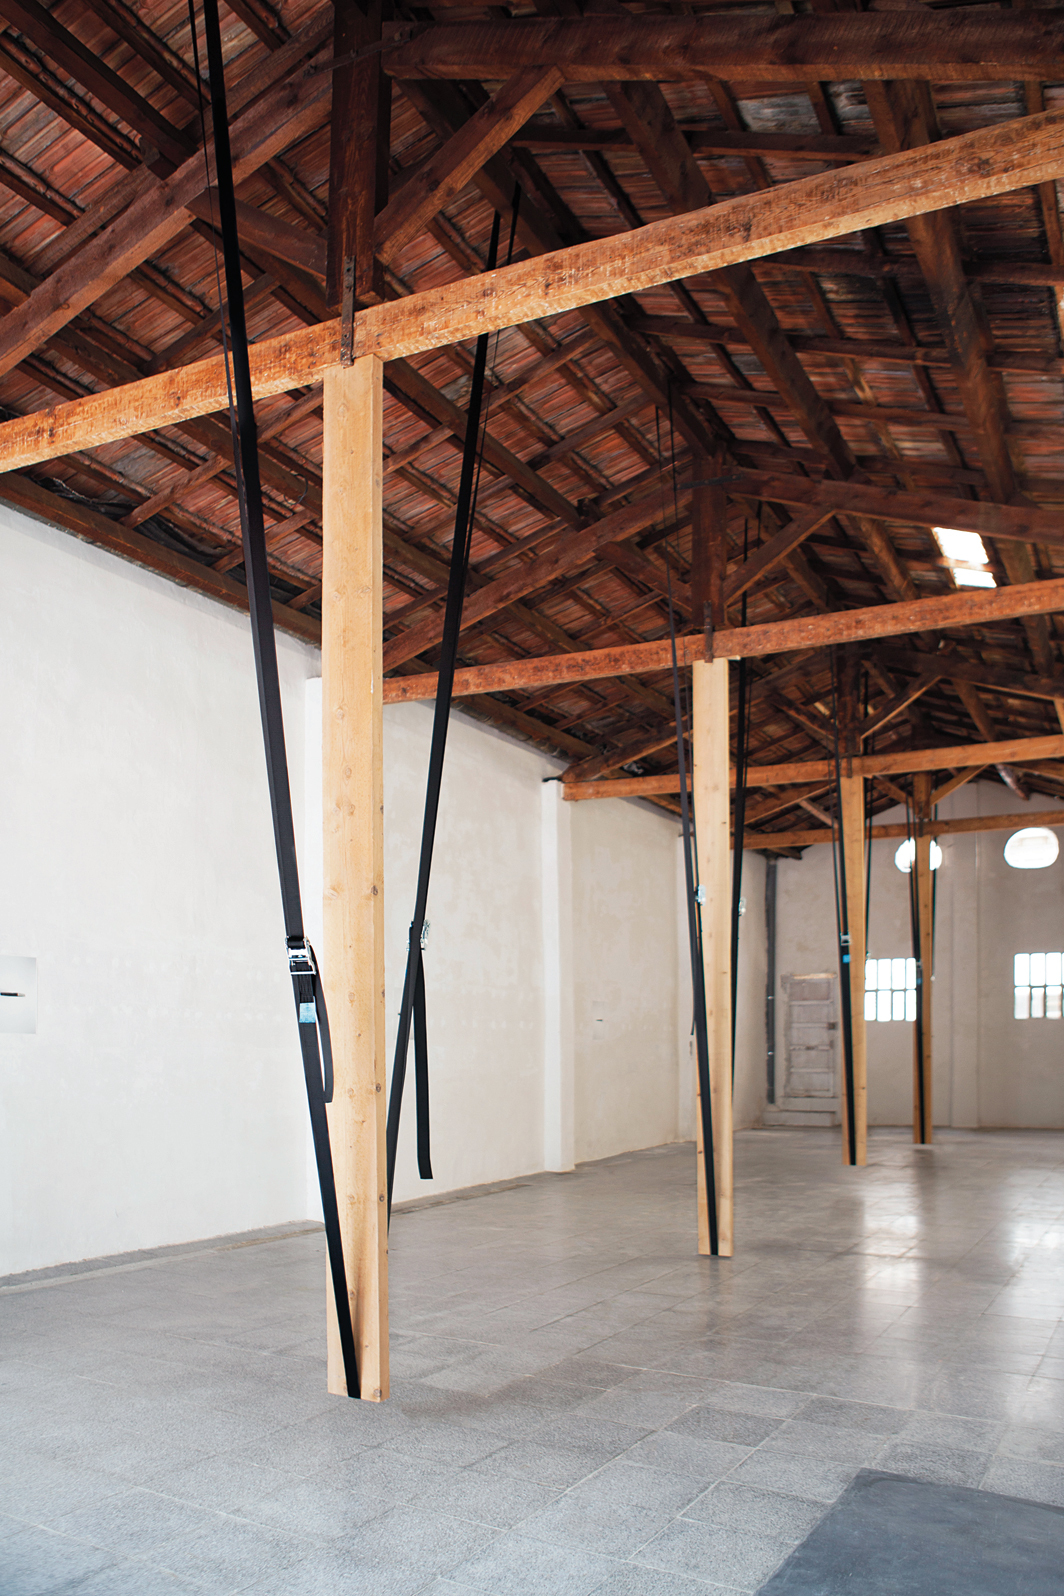 Eulàlia Rovira, Esmorteir l'esmorteït (Deaden the Deadened), 2020, wooden beams, nylon ratchet straps. Installation view.